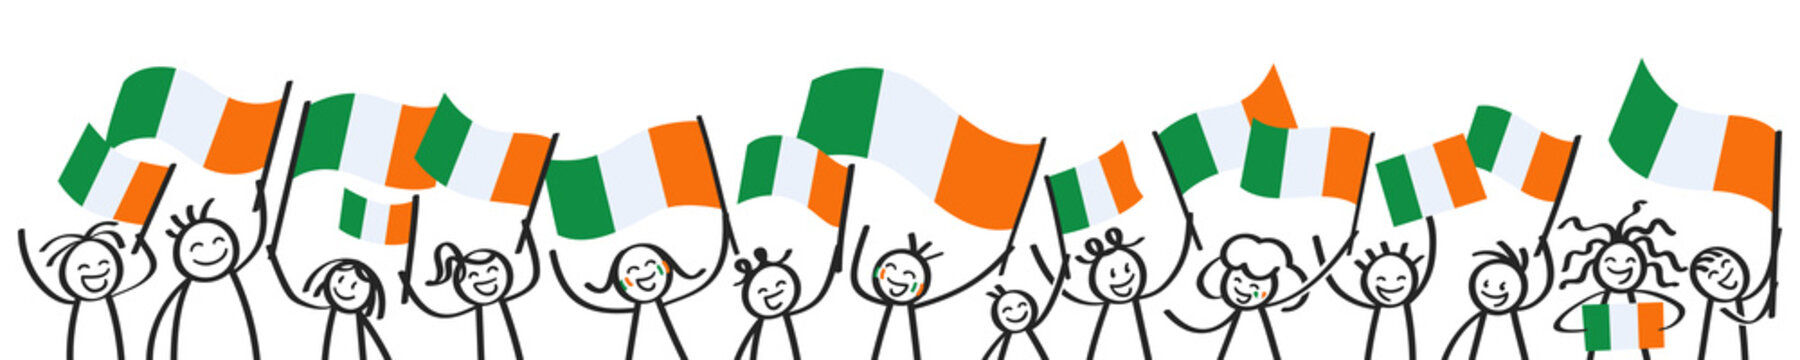 Cheering crowd of happy stick figures with Irish national flags, smiling Ireland supporters, sports fans isolated on white background